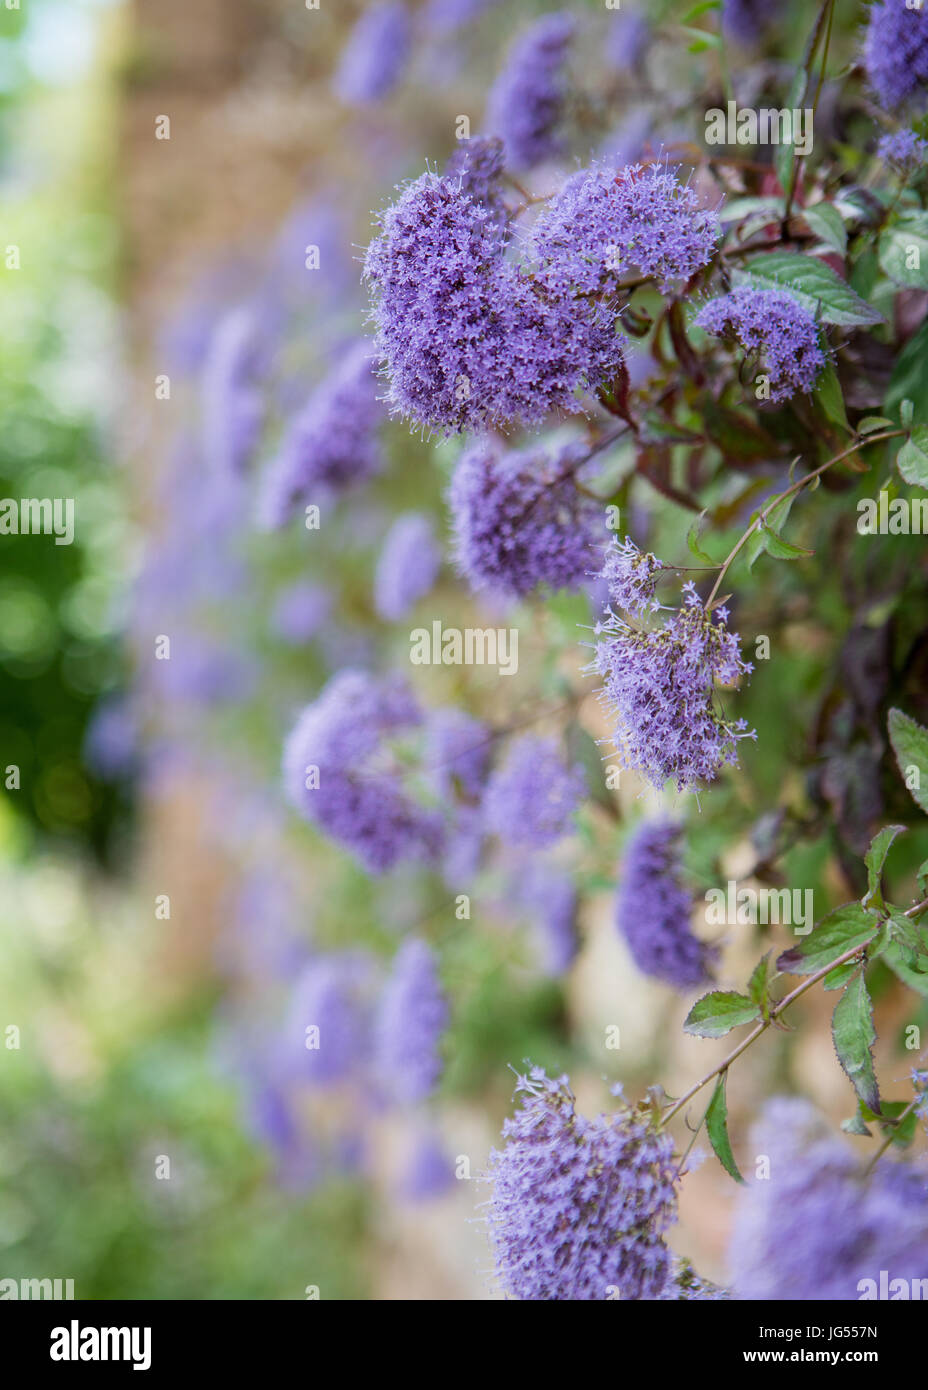 Plants growing on a wall at the Alhambra Palace and fortress located in, Granada, Andalusia, Spain. Stock Photo